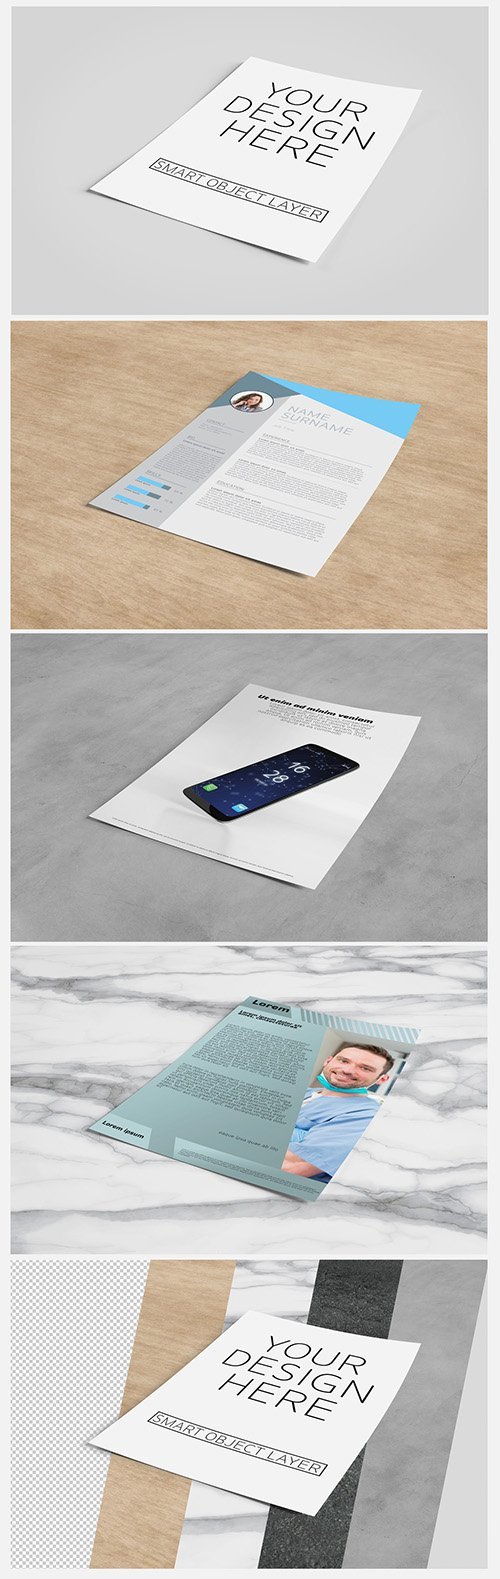 Sheet of Paper Mockup with Editable Layout 216847732 PSDT